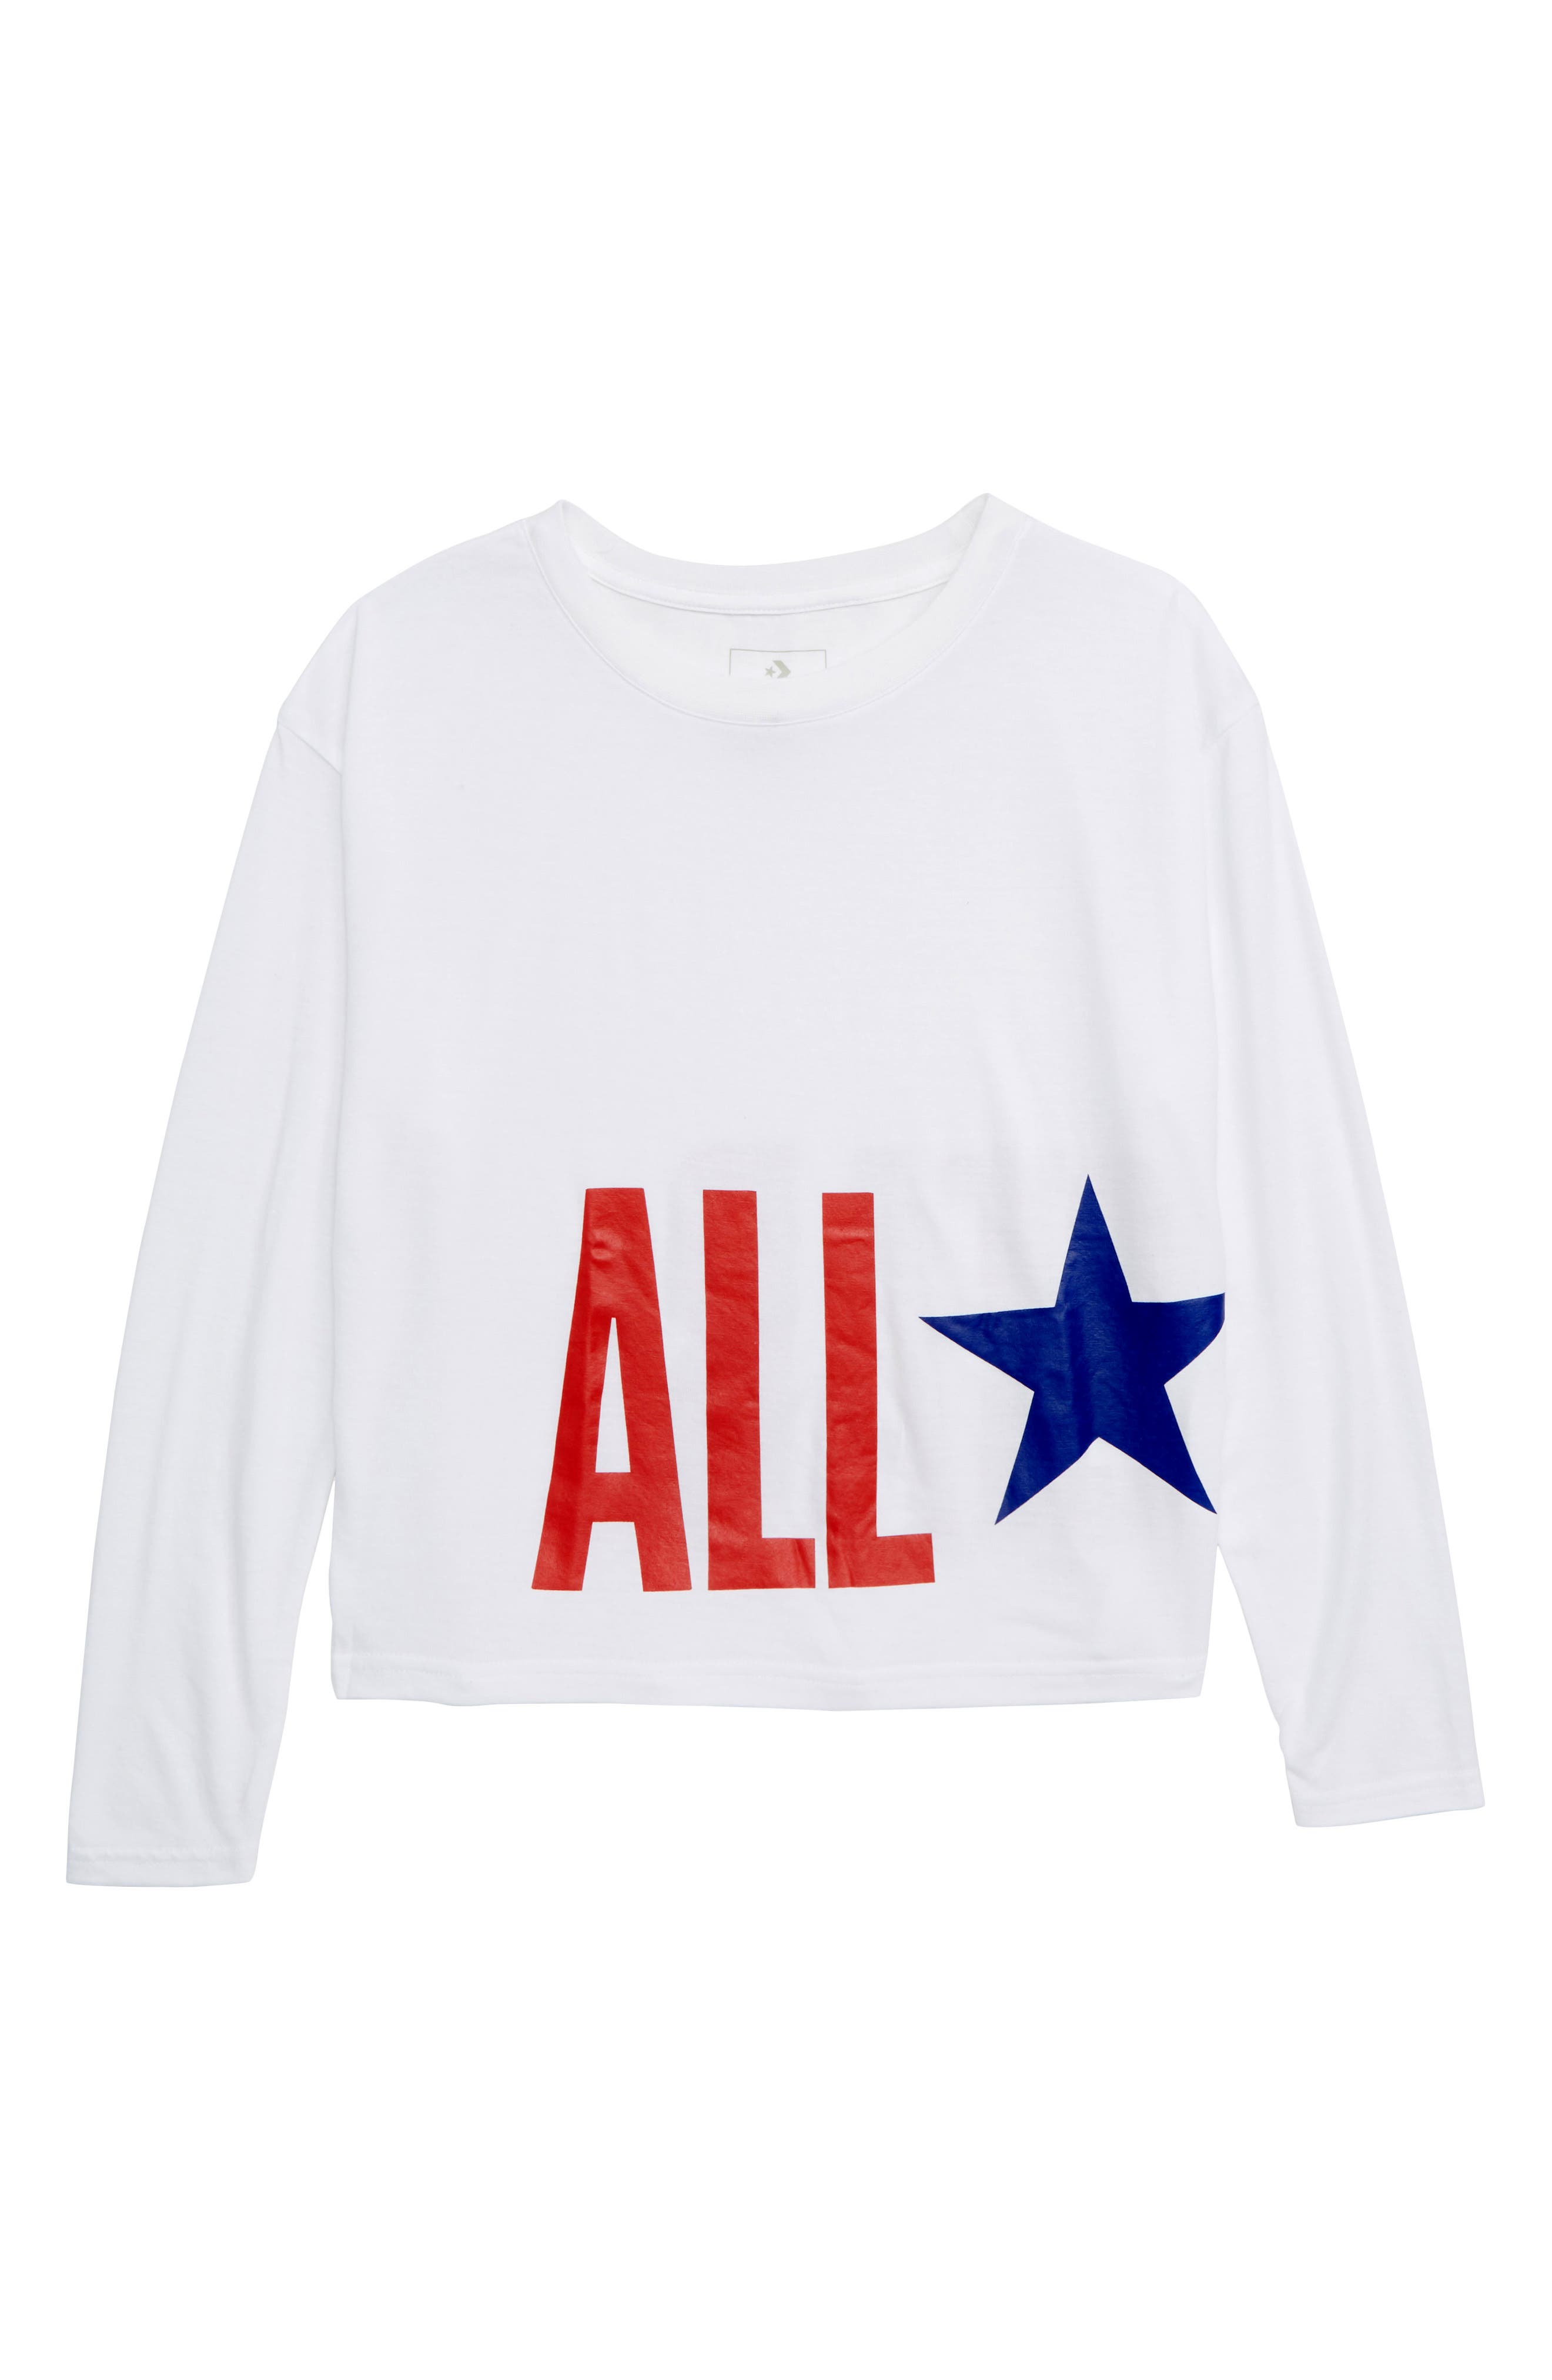 All Star<sup>®</sup> Oversize Long Sleeve Tee,                             Main thumbnail 1, color,                             WHITE